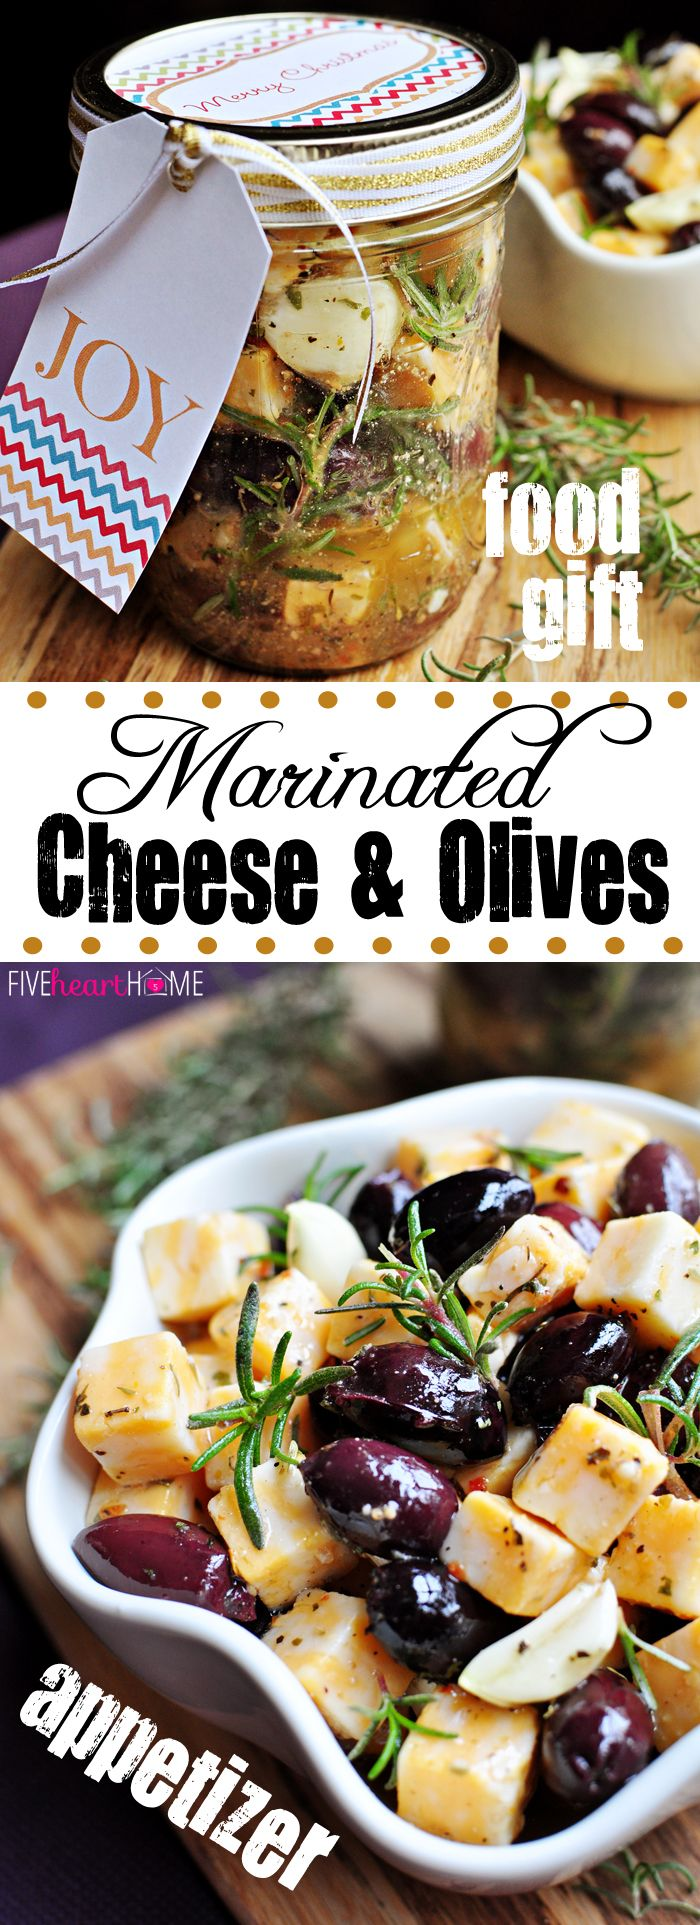 Marinated Cheese and Olives ~ savory holiday appetizer or unique food gift idea | FiveHeartHome.com